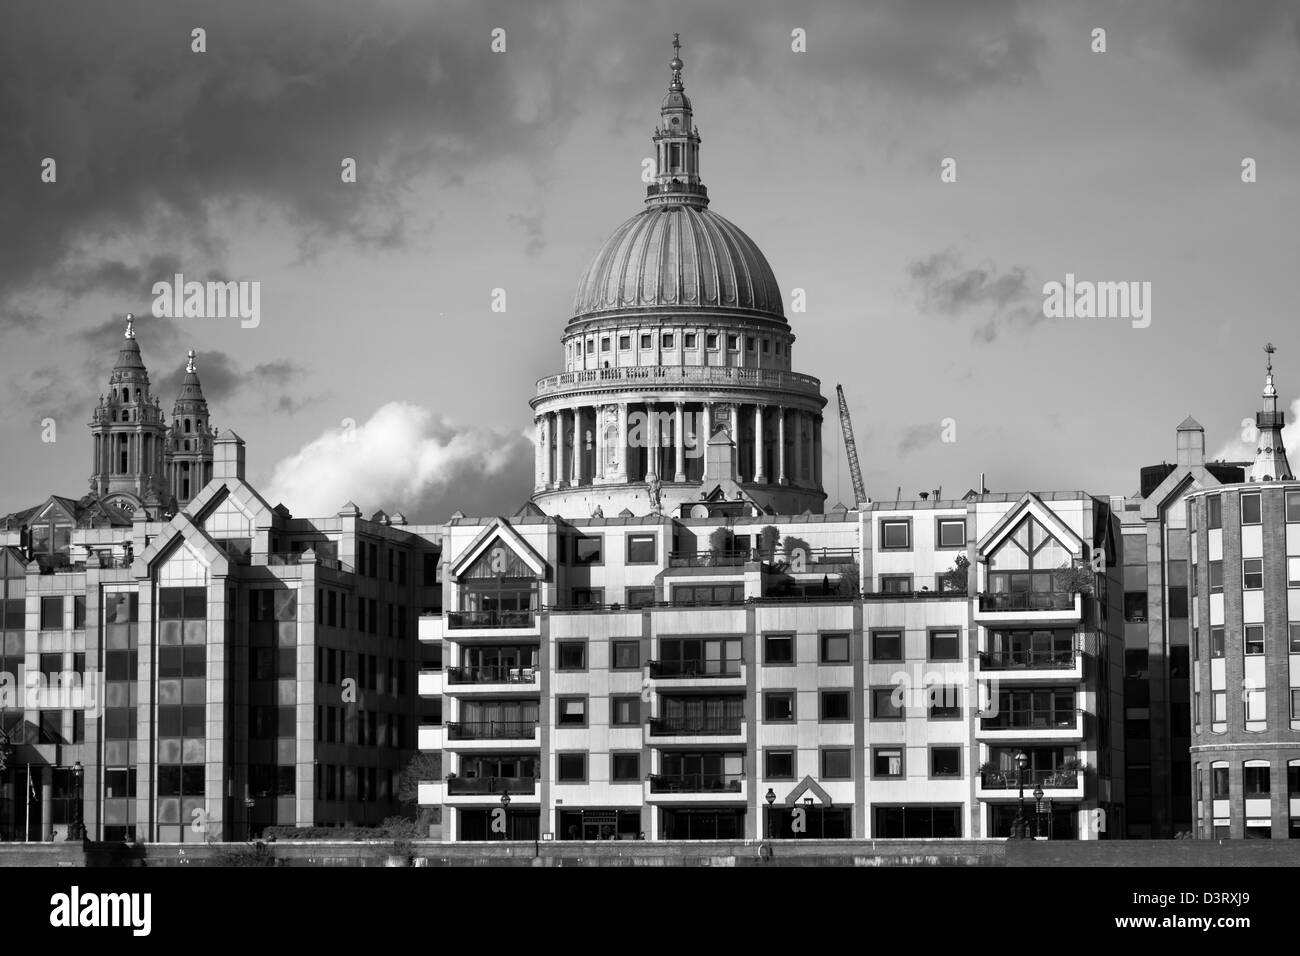 London - Stock Image